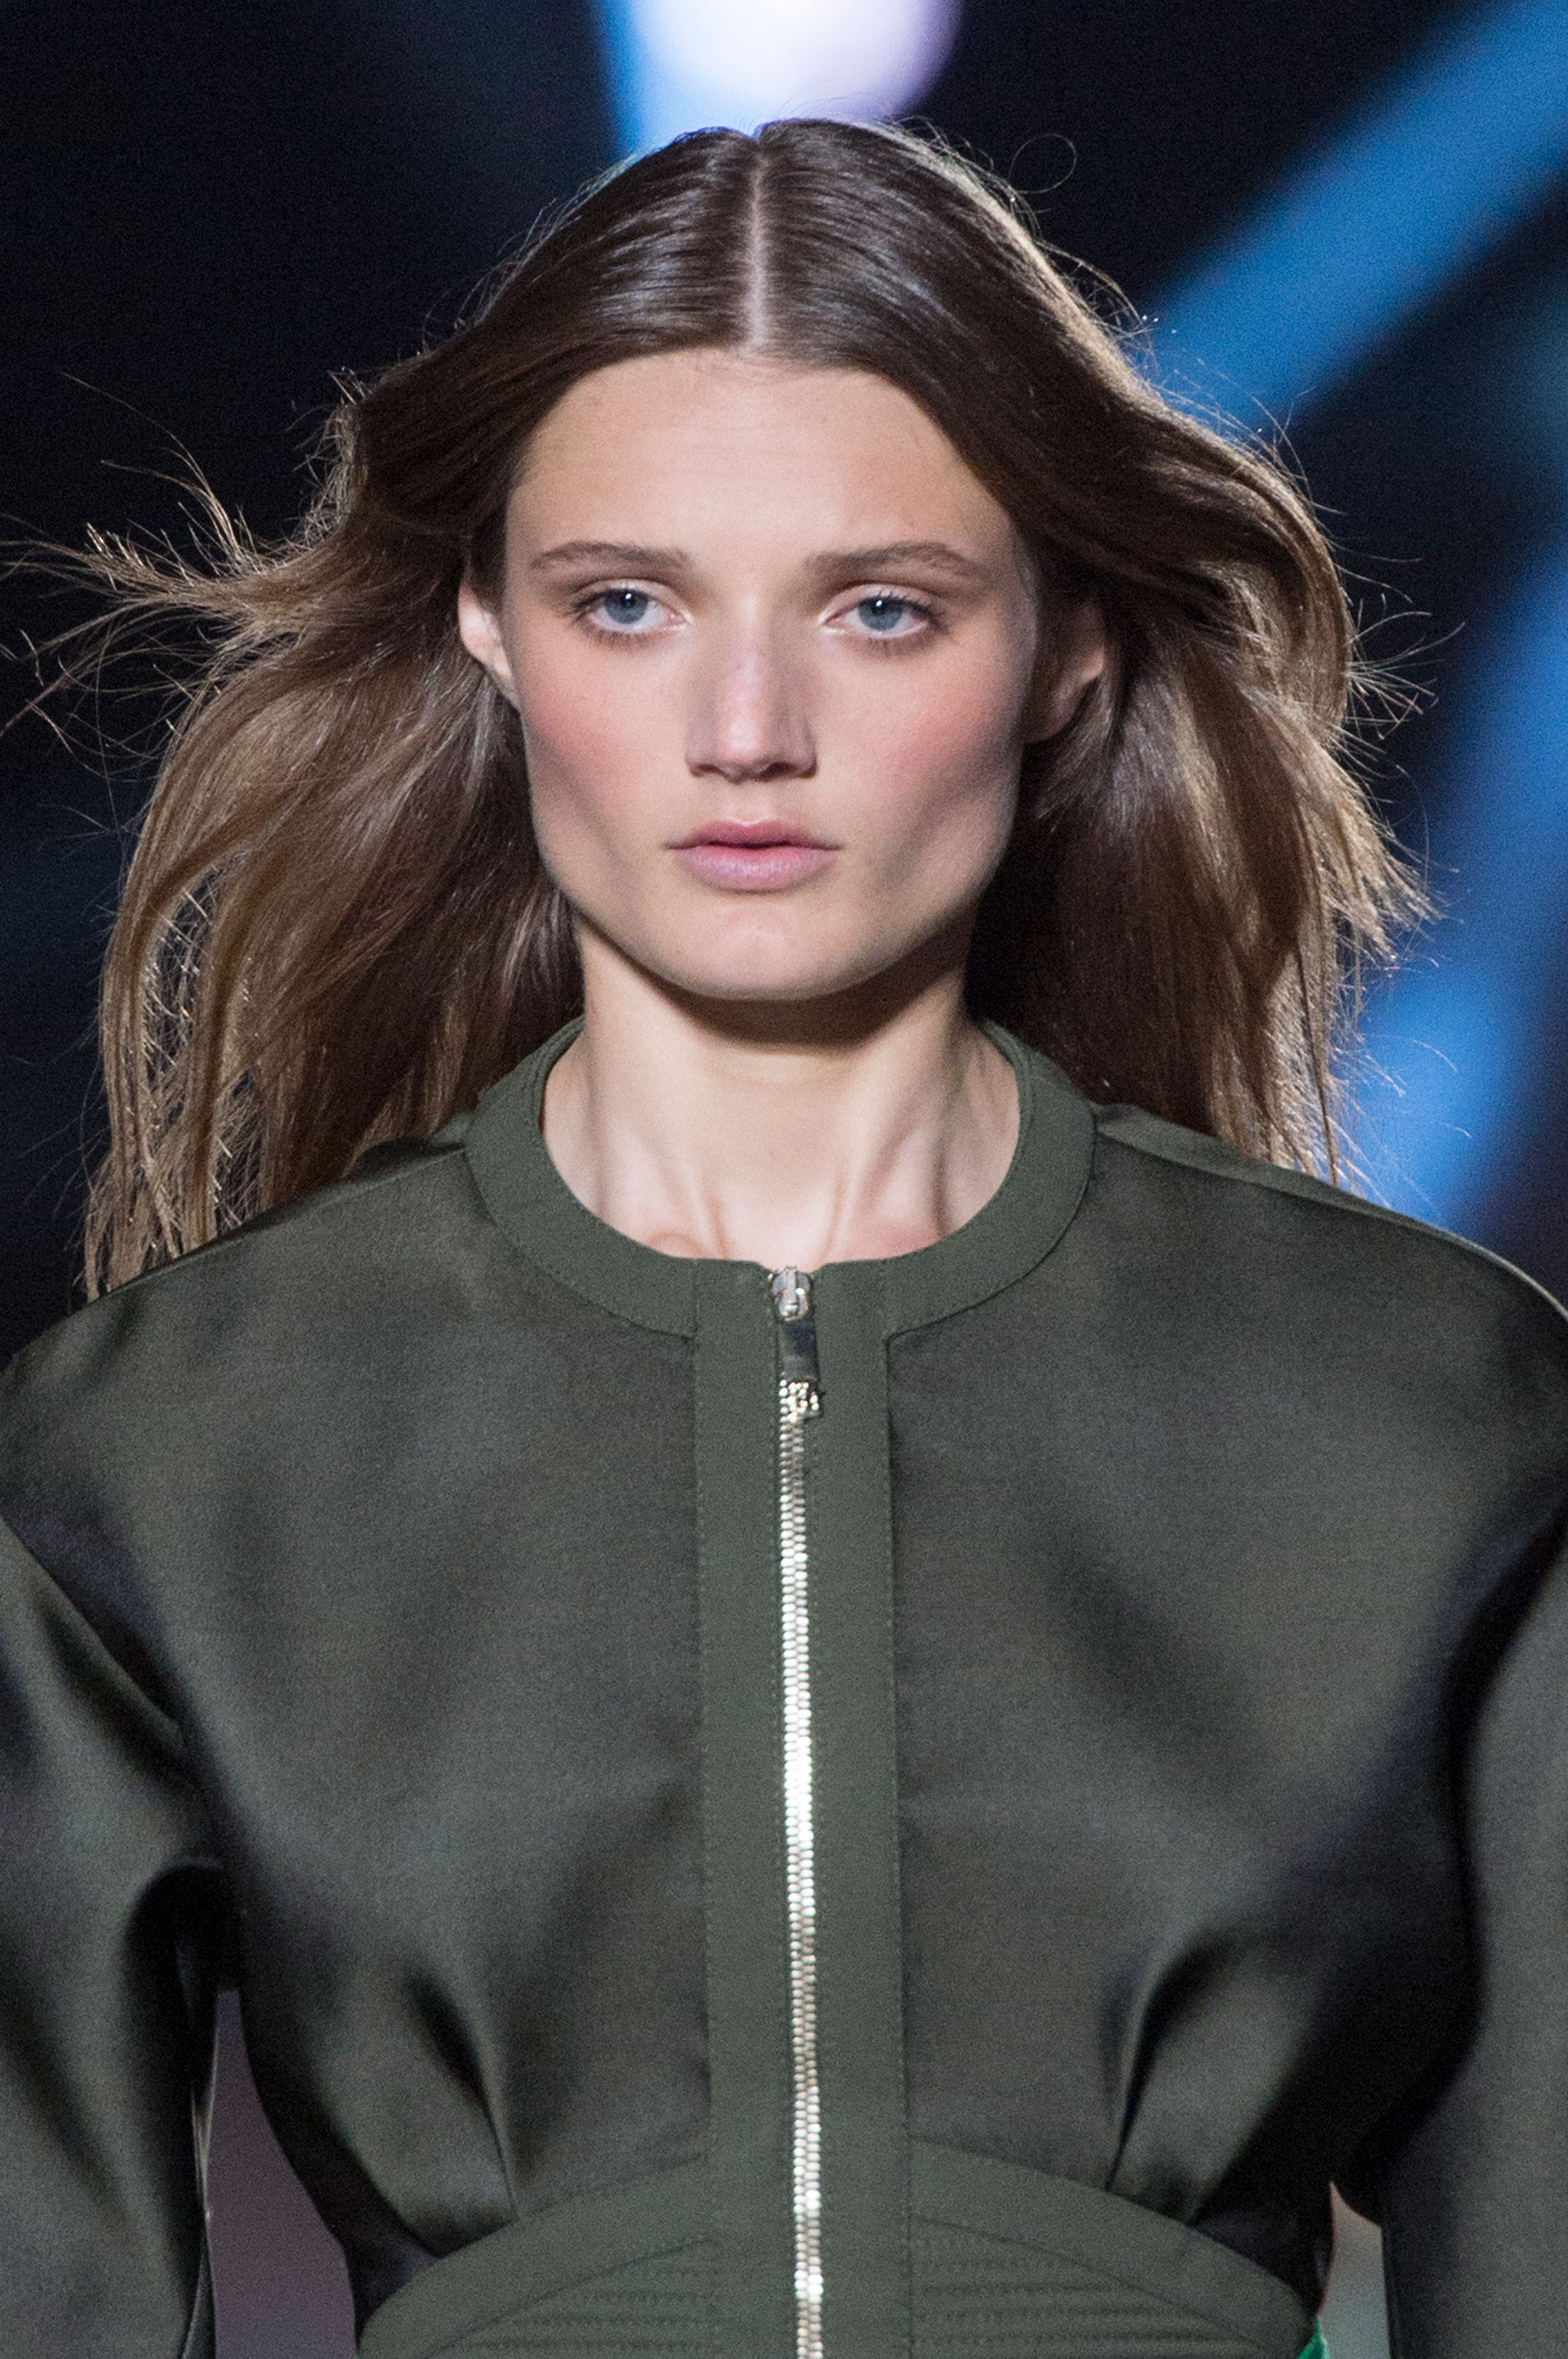 versace-runway-beauty-spring-2016-fashion-show-the-impression-002